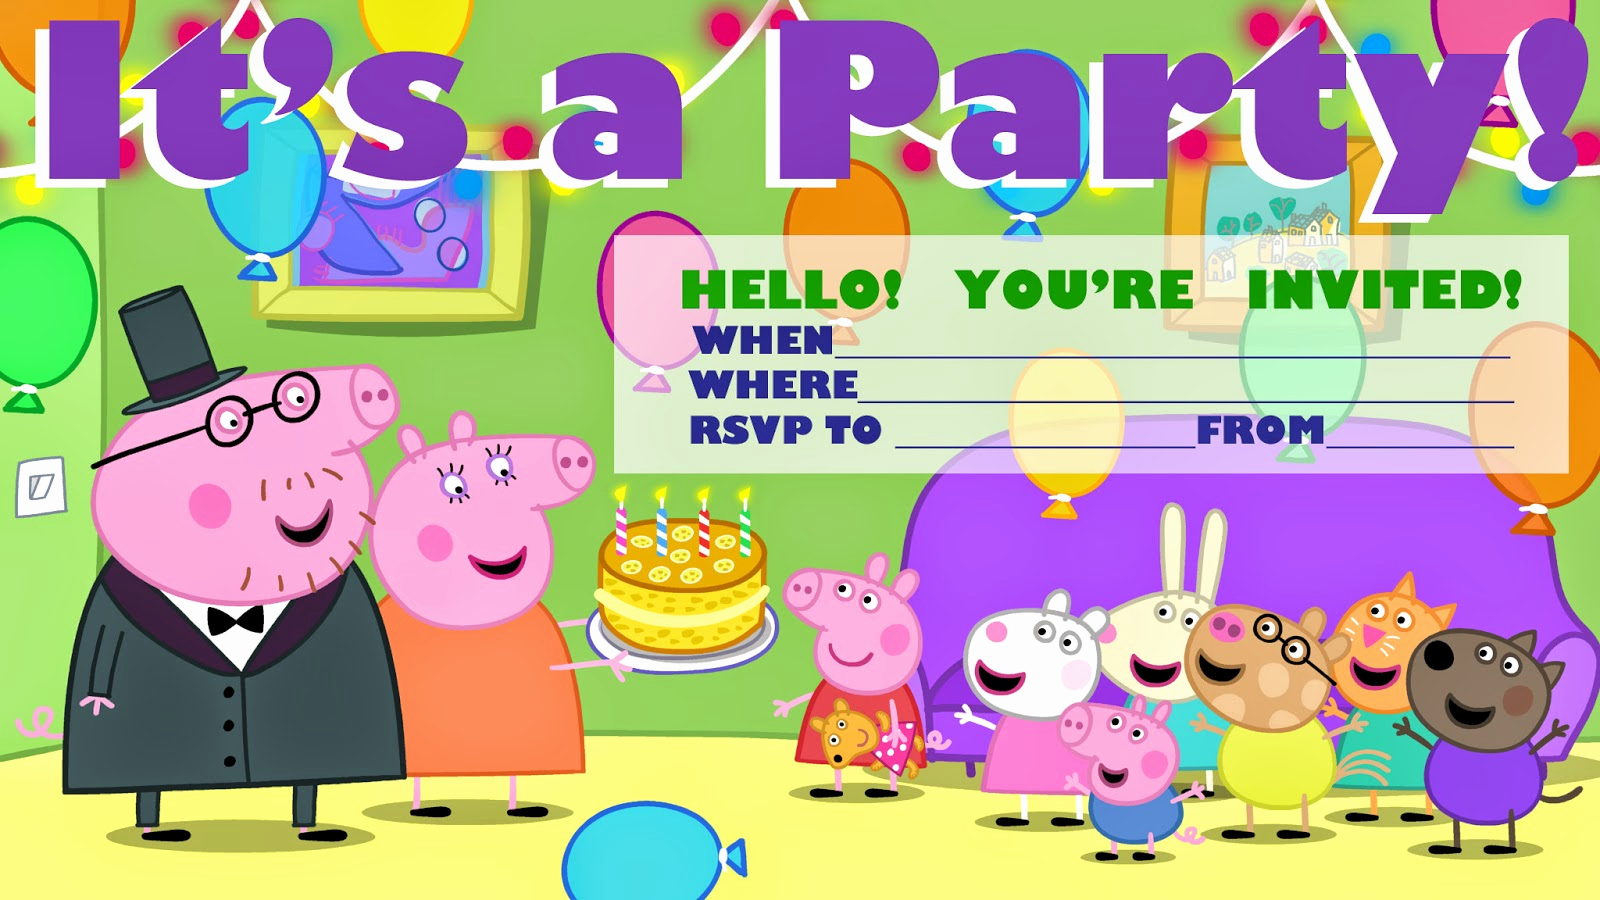 Peppa Pig Invitation Template Free Elegant Invitations for Sleepover Party Peppa Pig Party